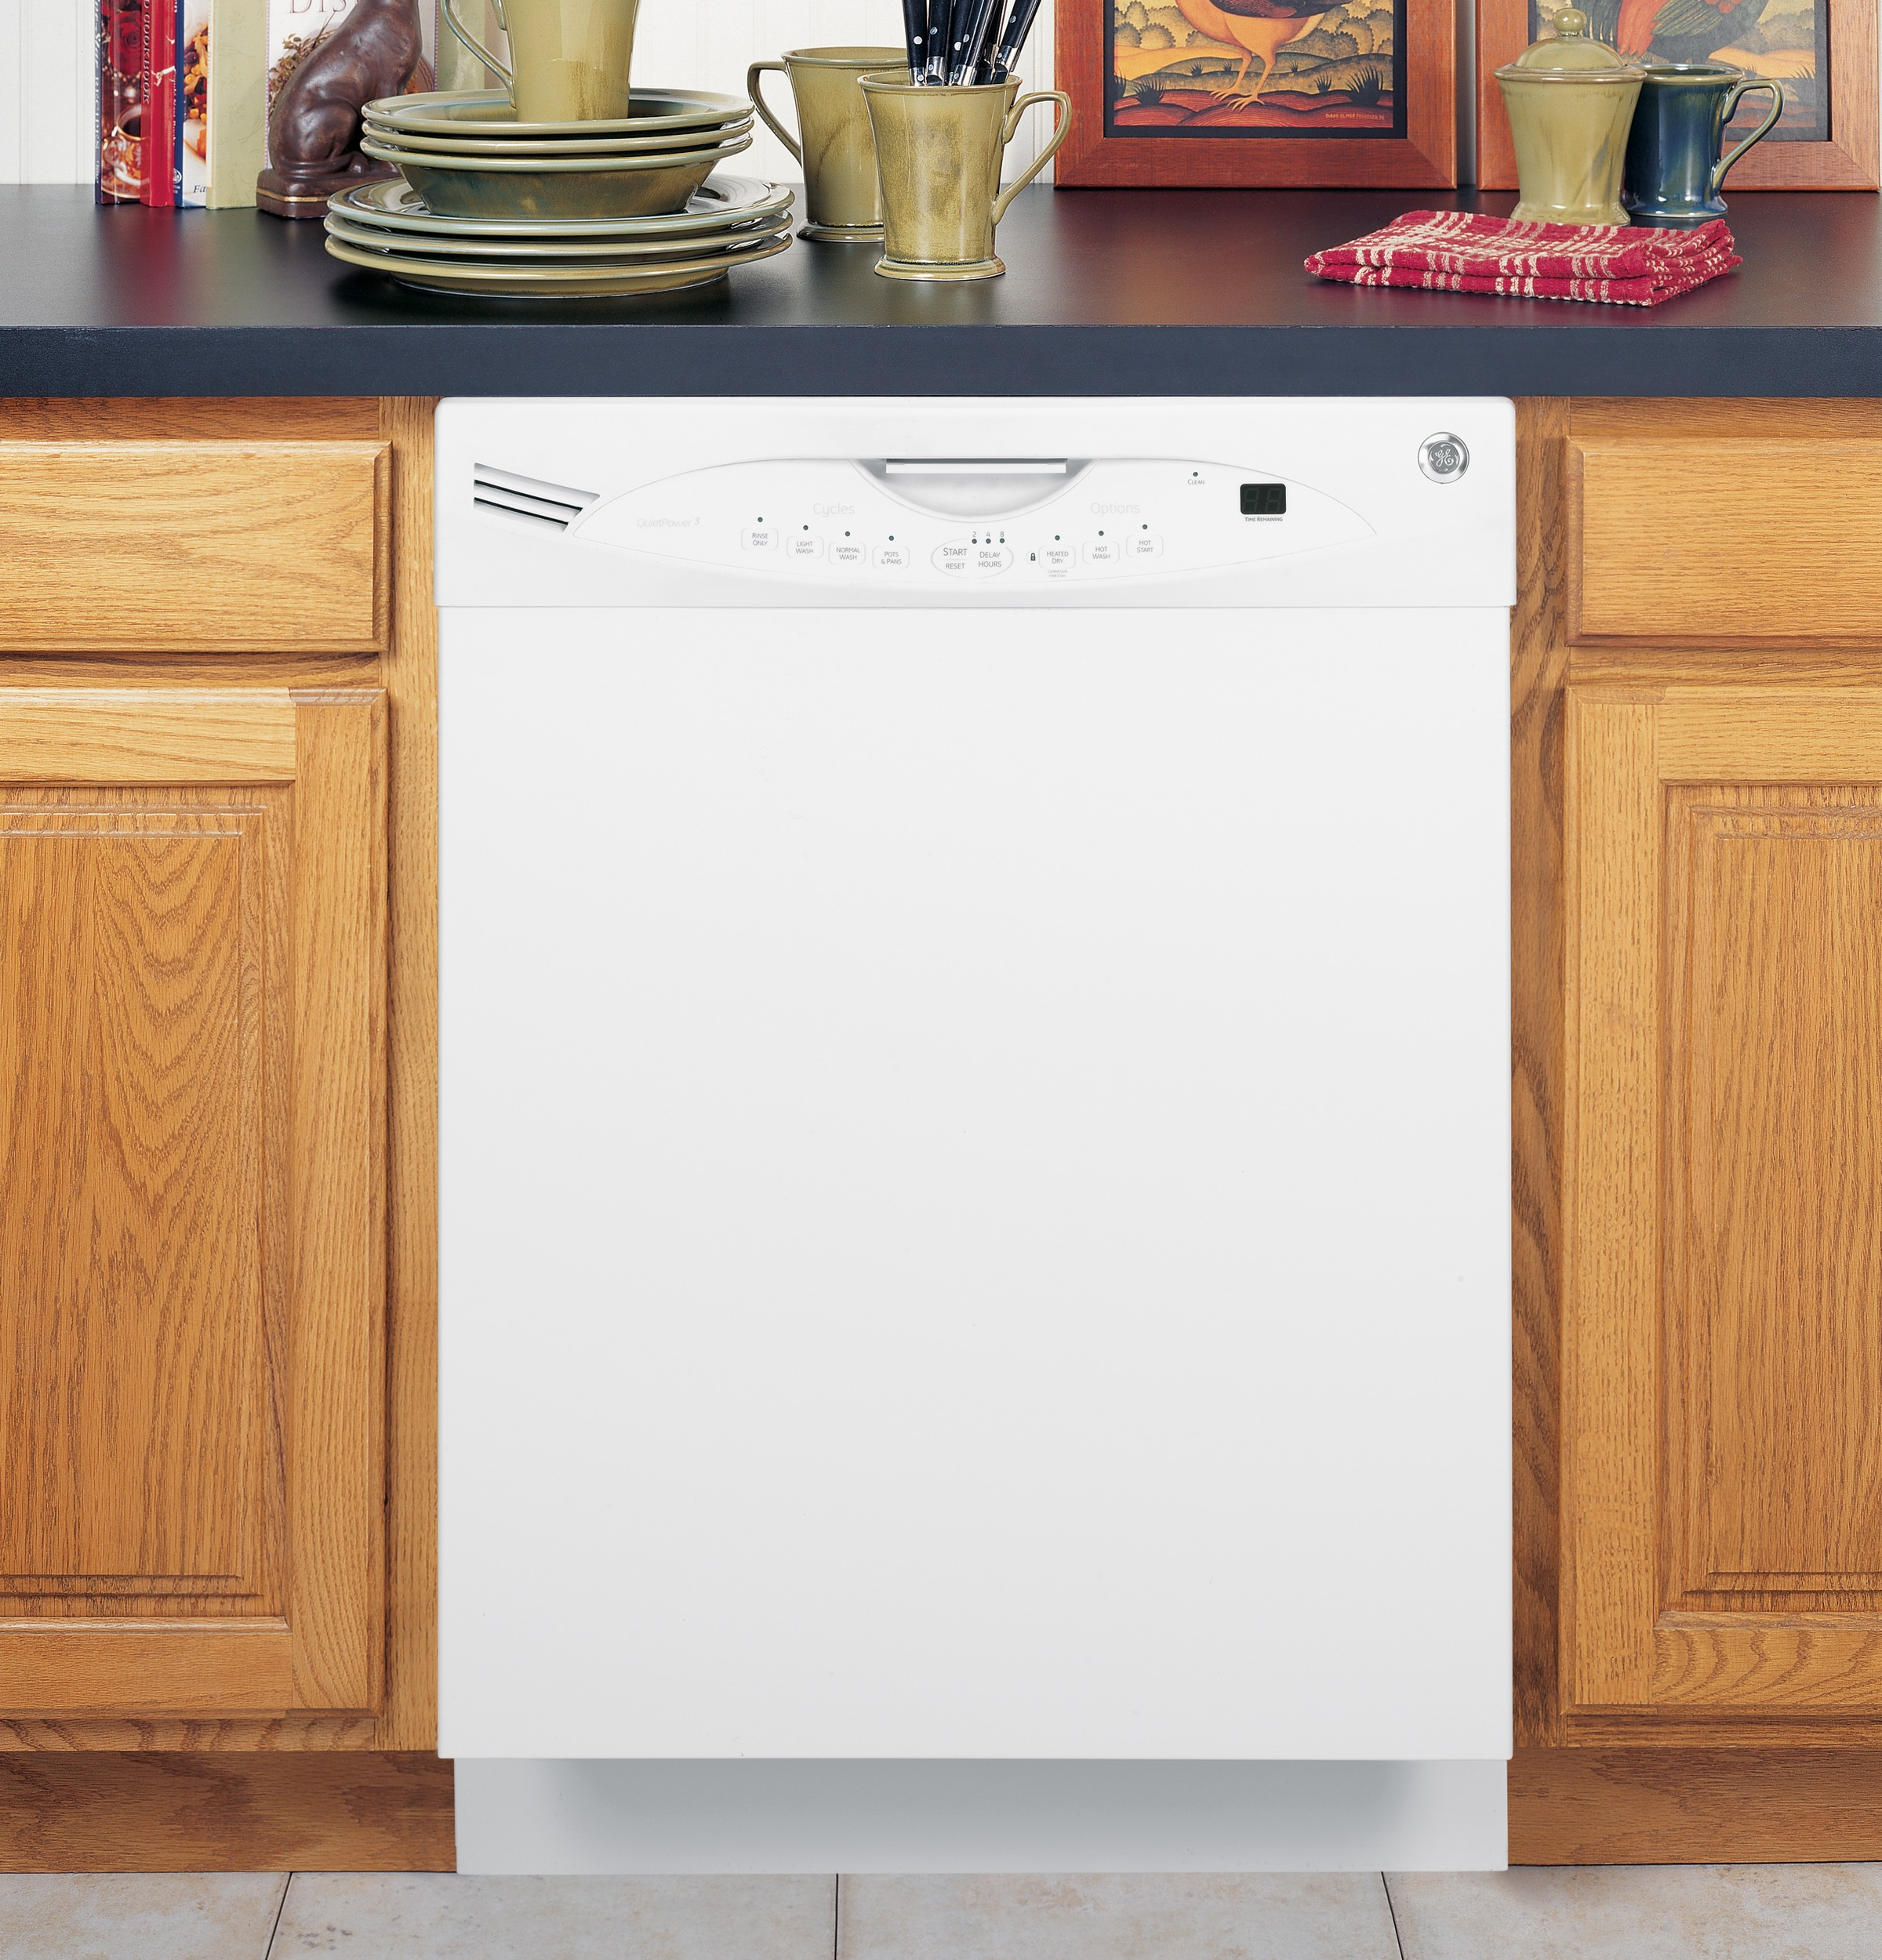 gea drawer requesttype dispatcher name controls steel ge single stainless hidden with image hybrid interior appliance specs dishwasher product